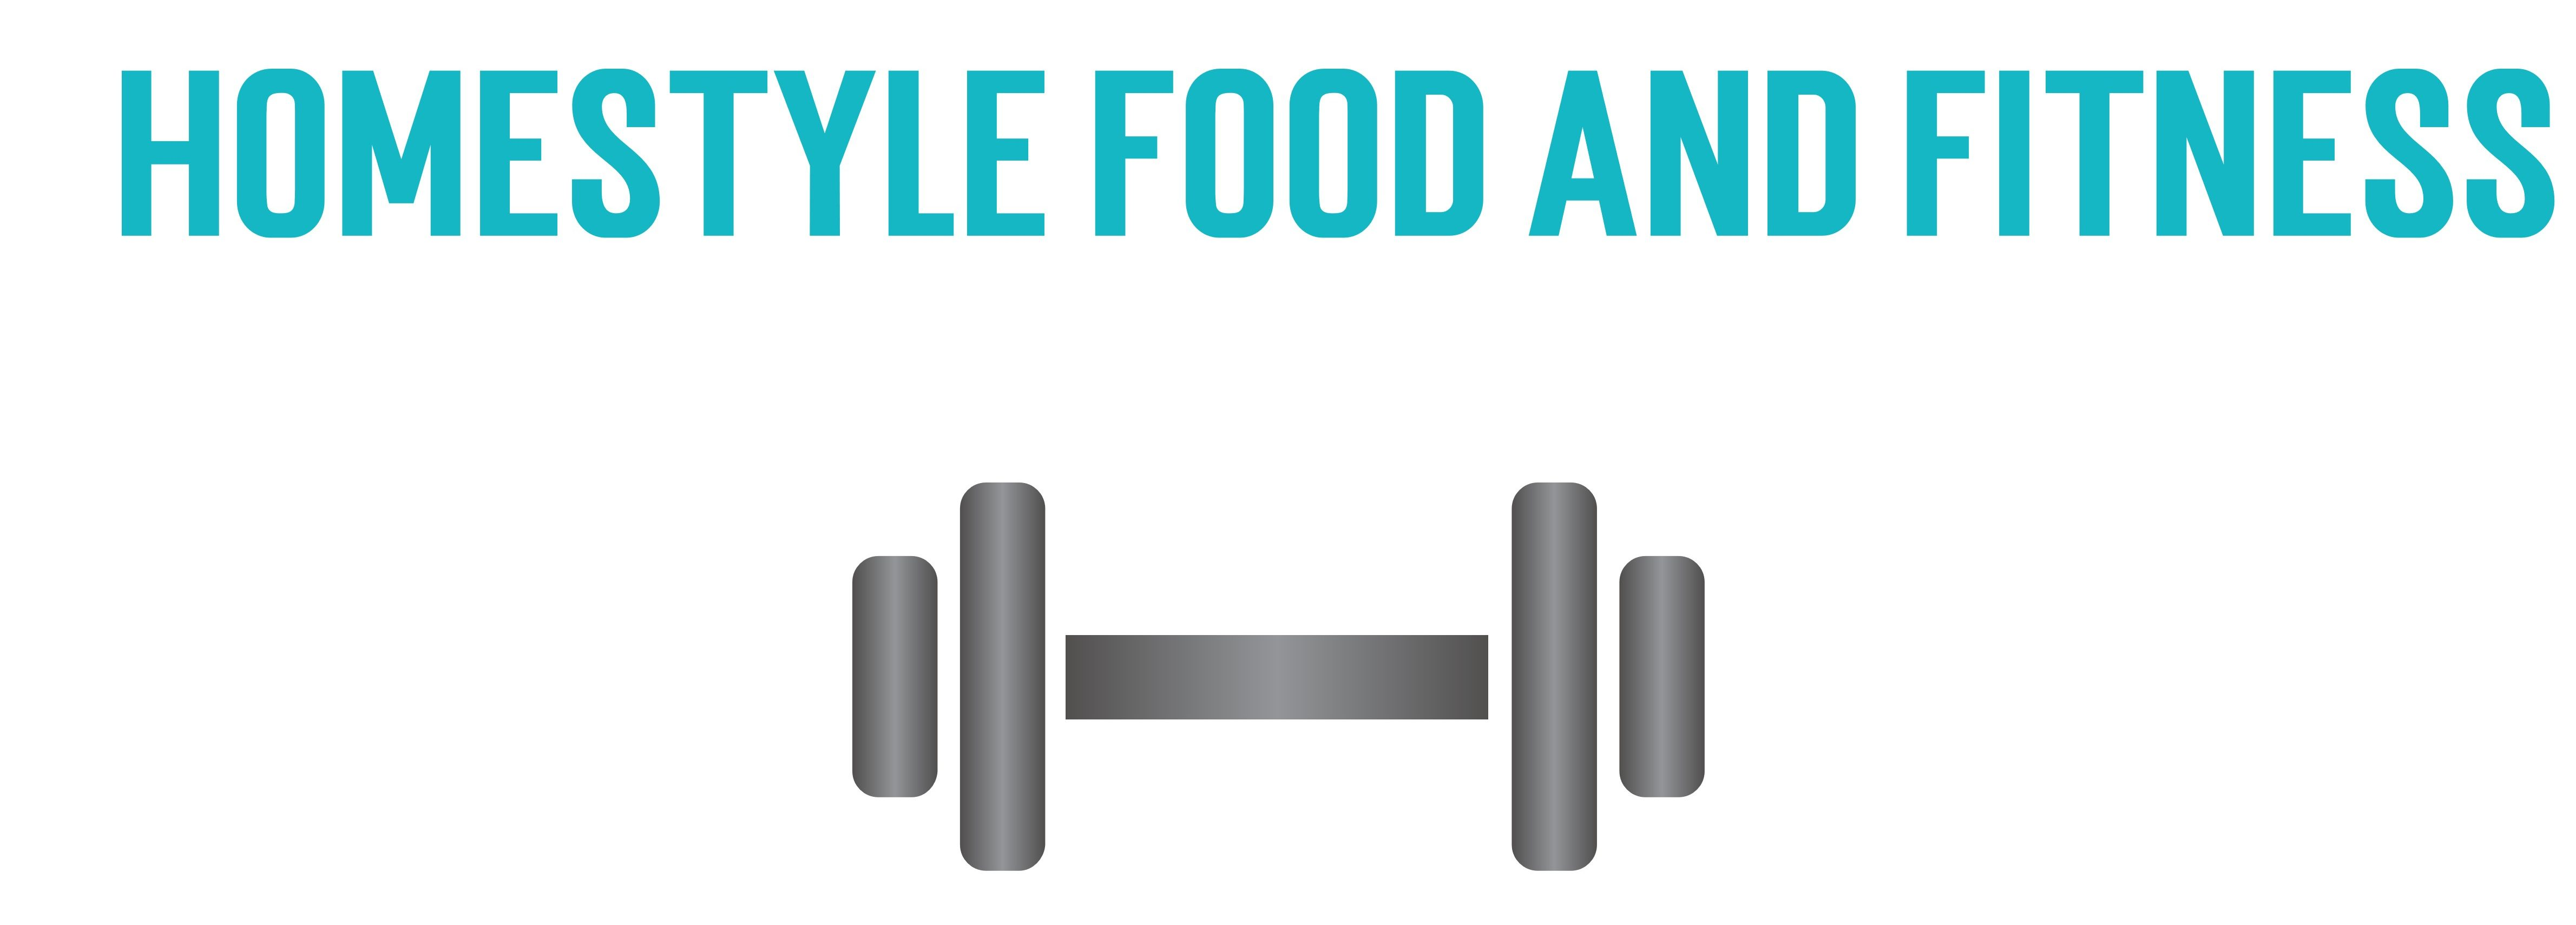 Homestyle Food and Fitness